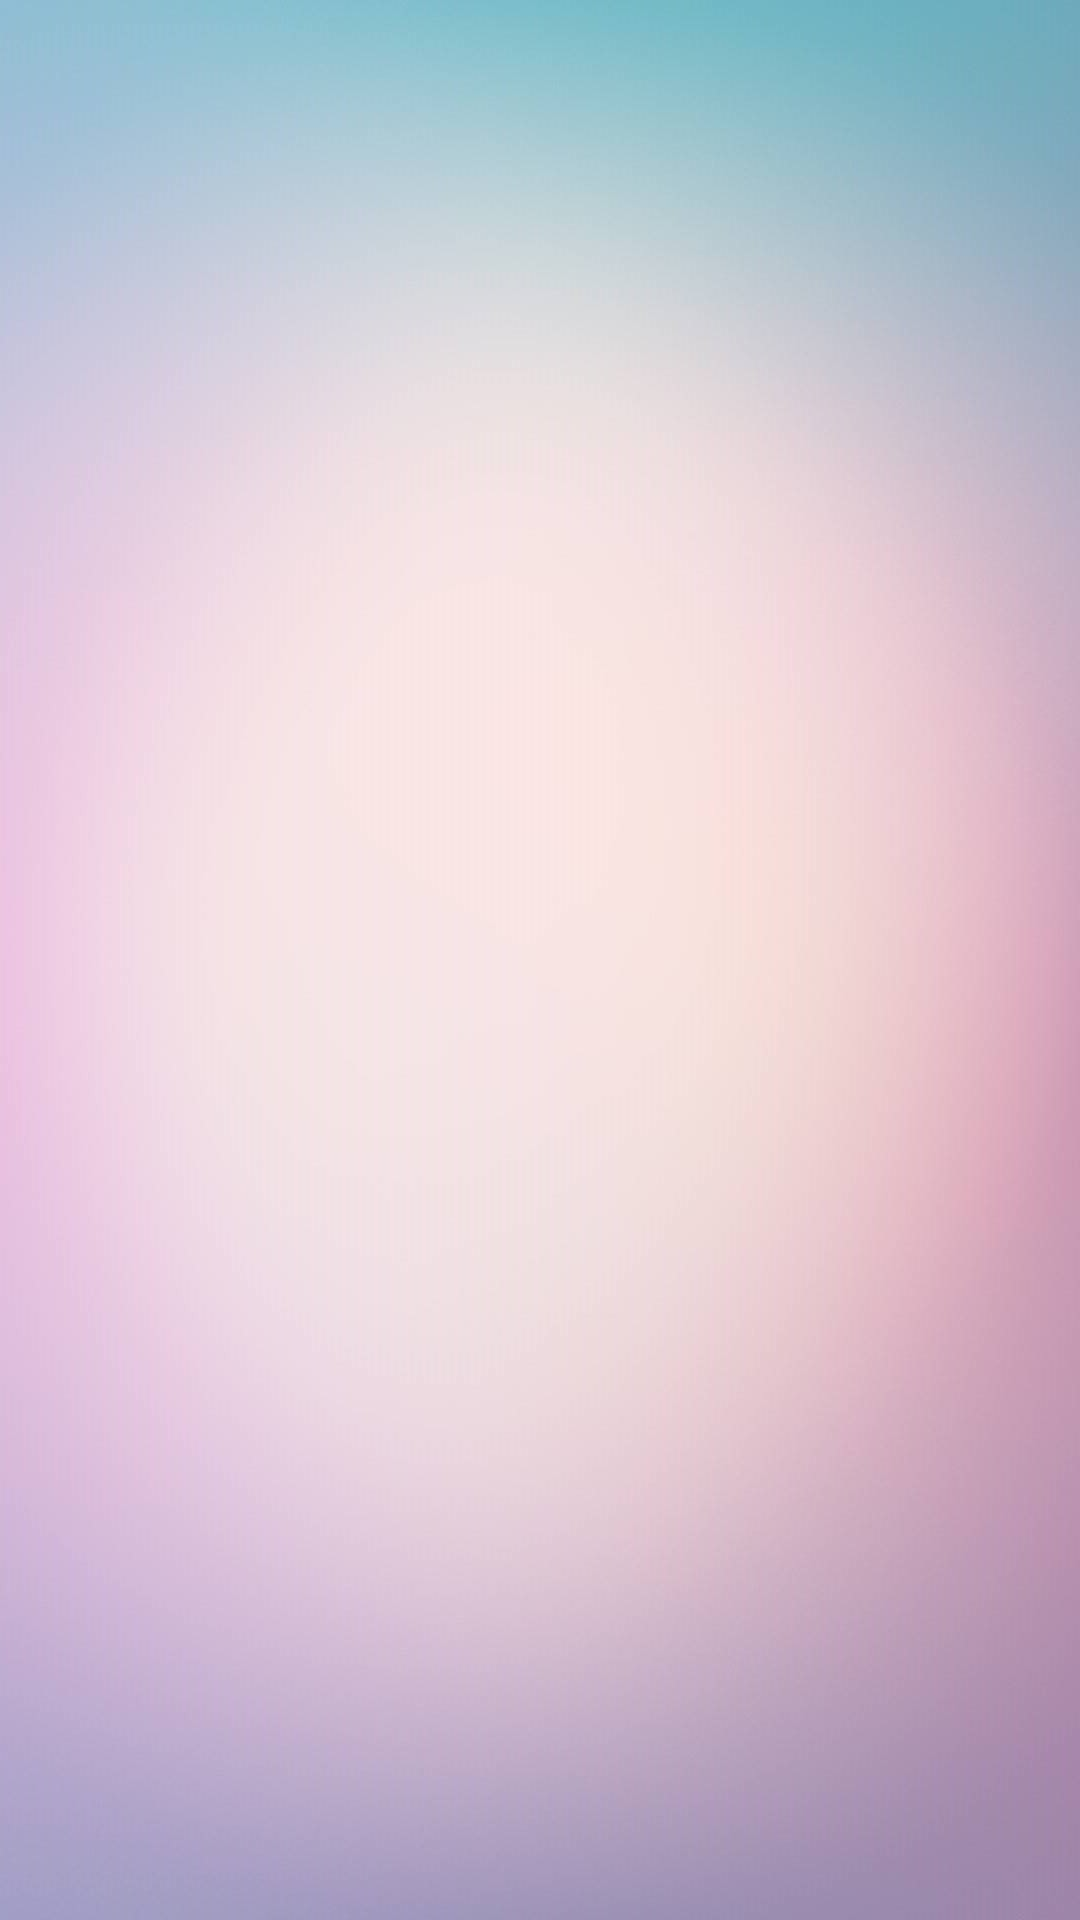 Calming-Blurred-Background-Calming-blurred-lights-and-gradients-for-iPhone-mobile-wallpaper-wp3403688